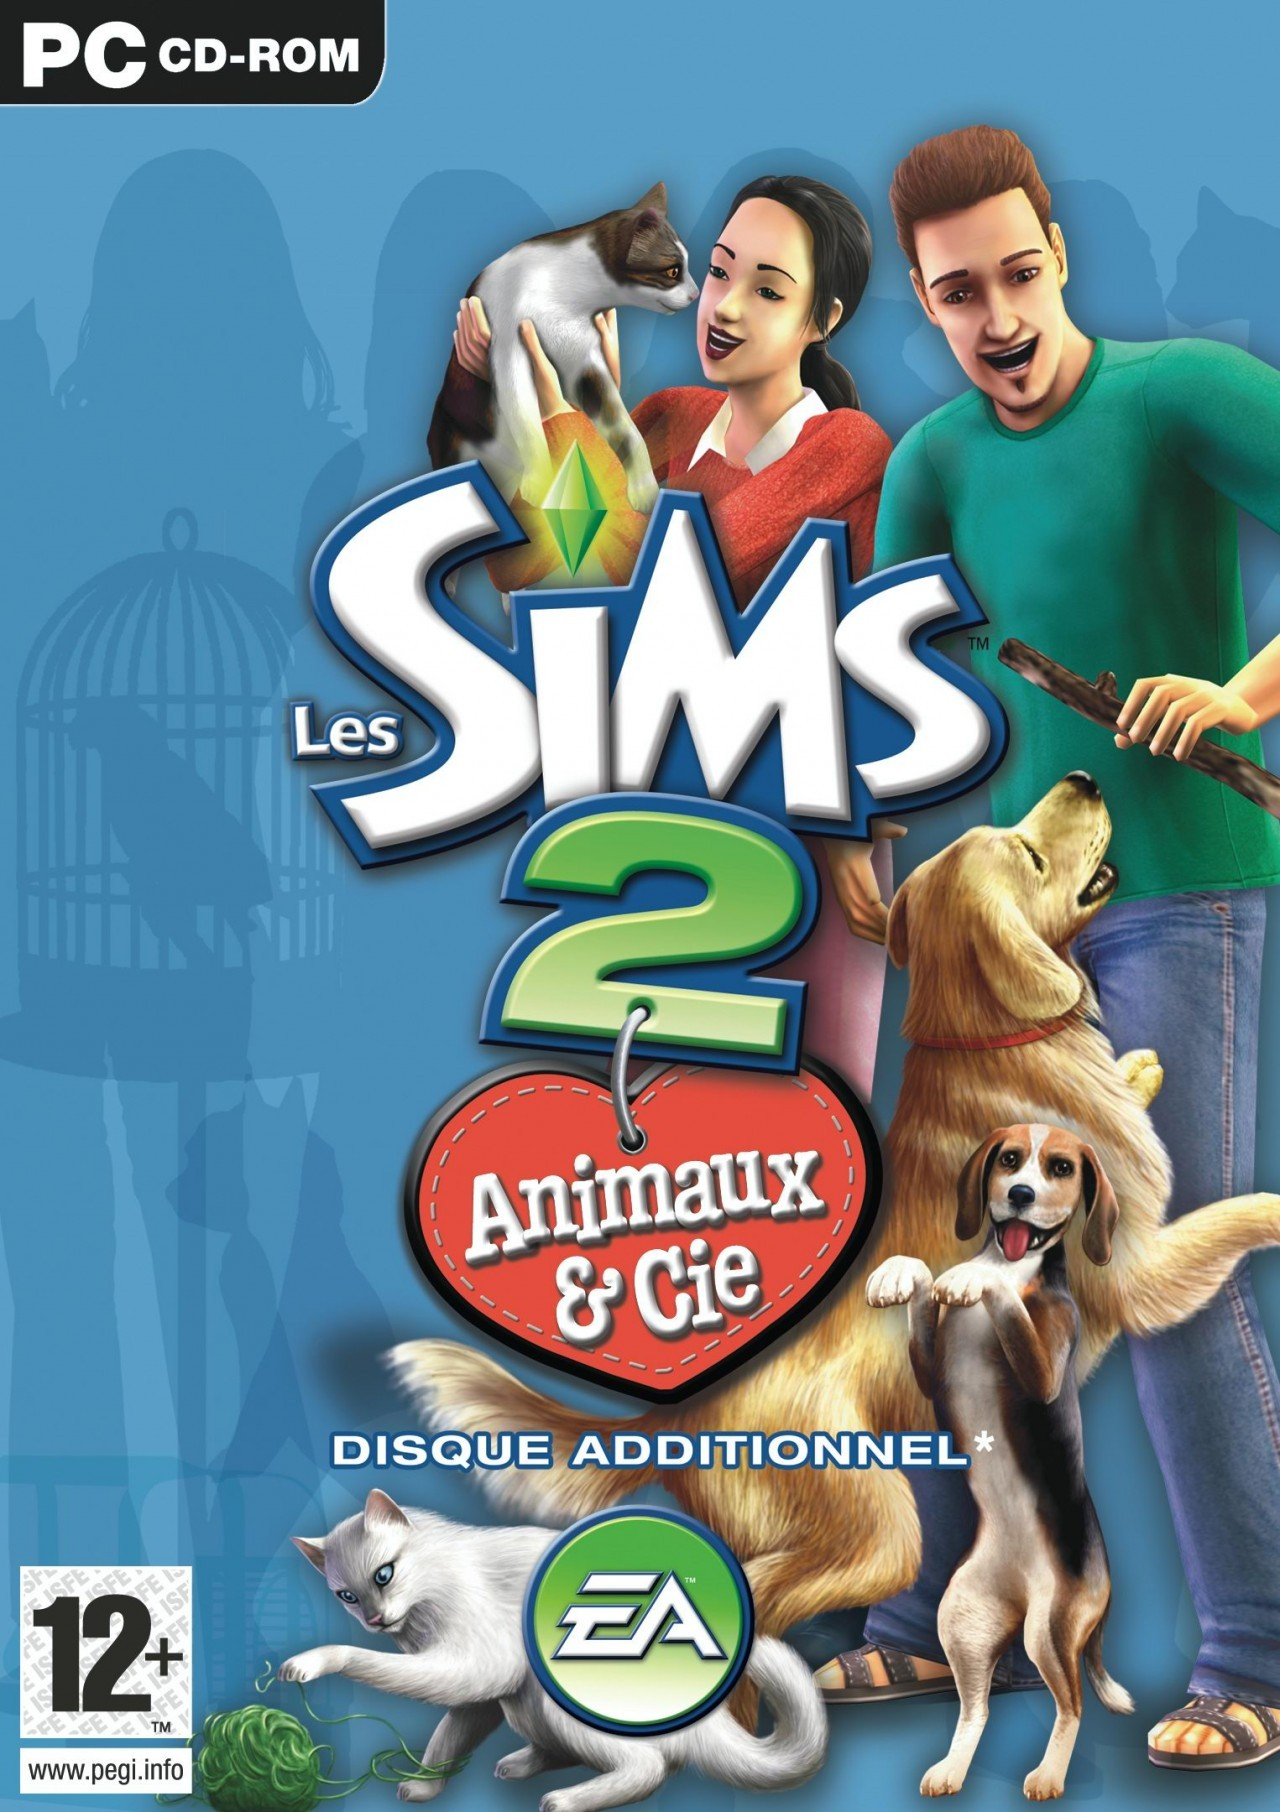 Les Sims 3 Showtime Edition Collector Katy Perry: Les Sims 2 : Animaux & Cie